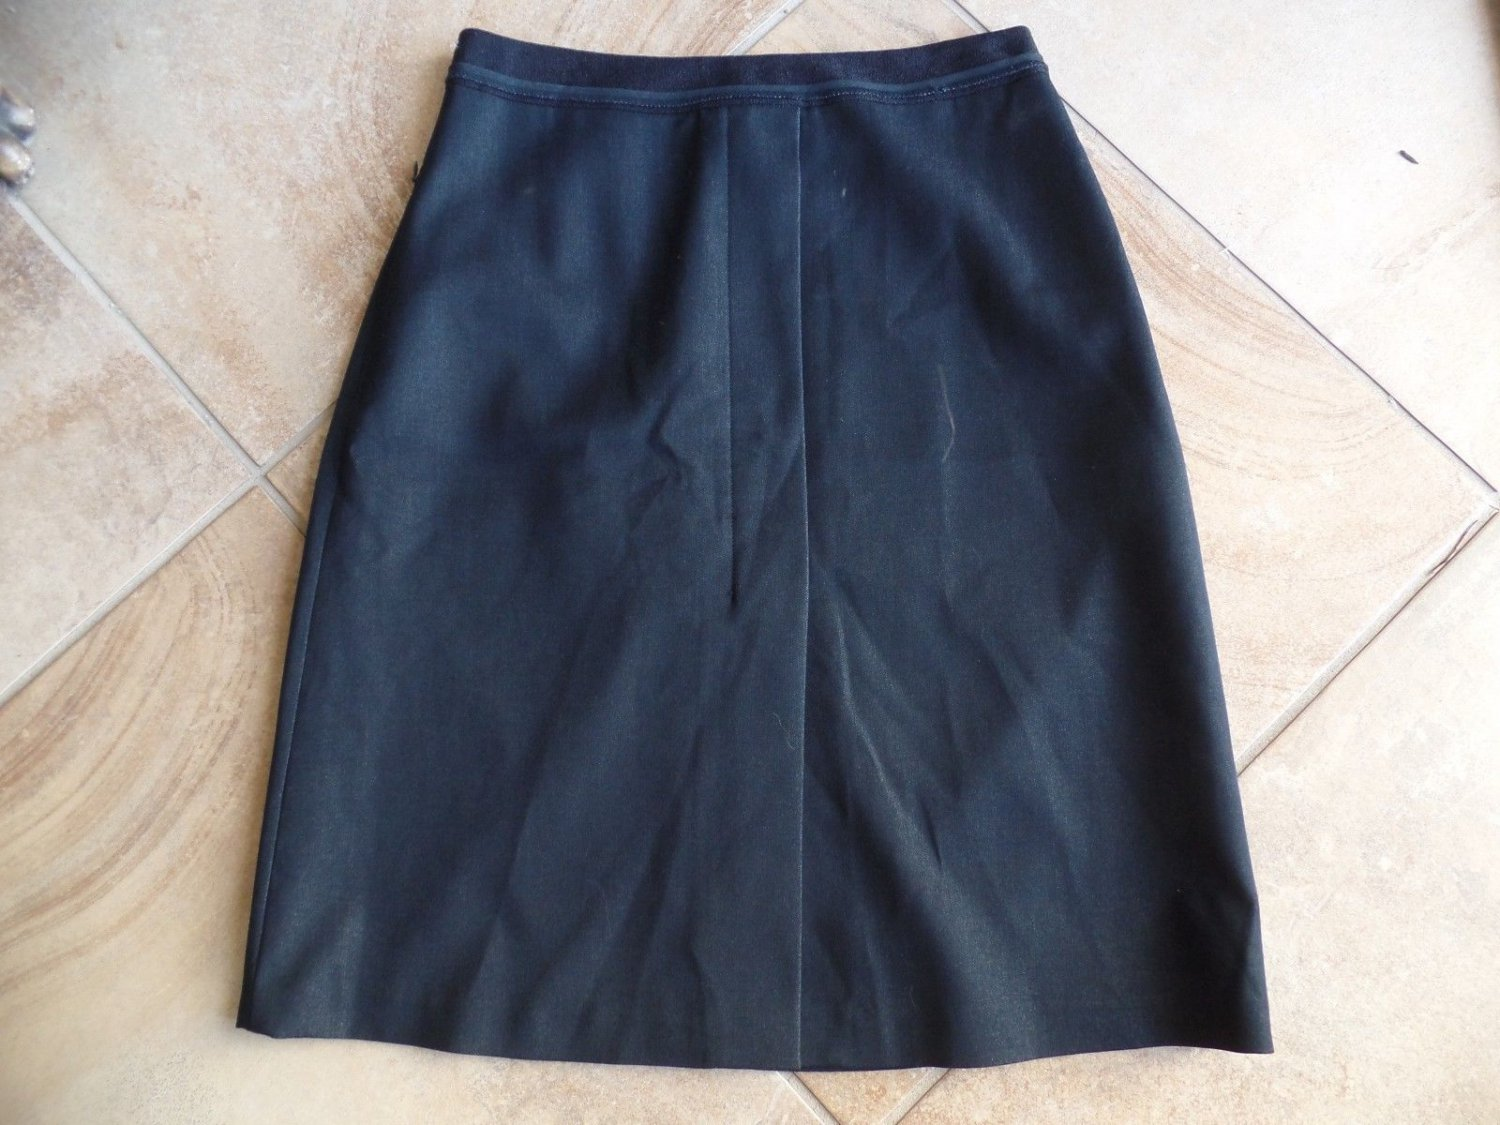 T TAHARI Dark Gray Classic Faux Wrap Pencil Skirt 8